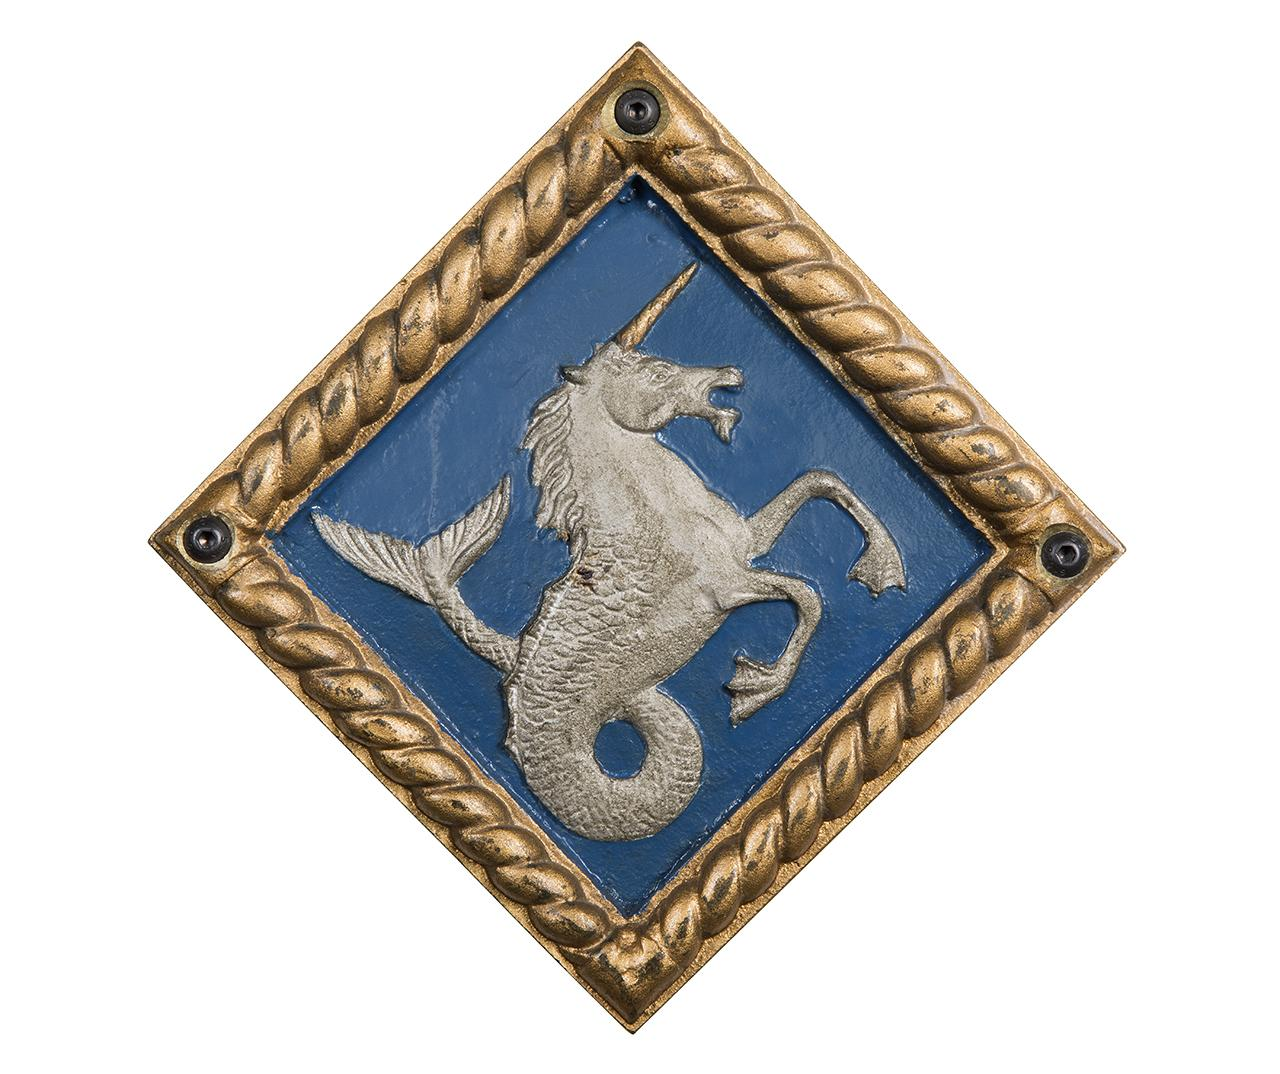 Emblem of unicorn with a mermaid's tail